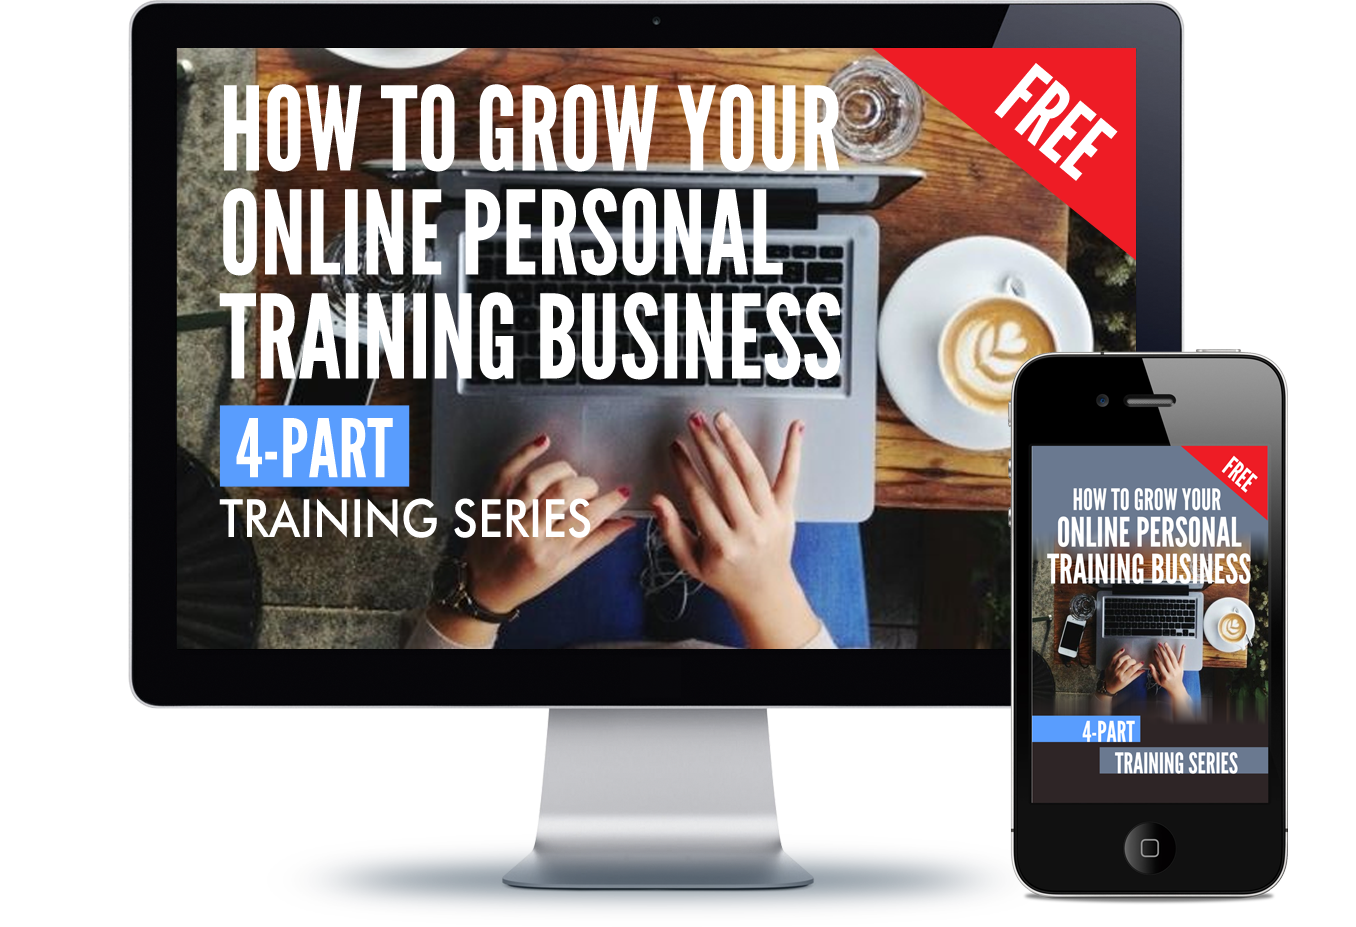 How To Grow Your Online Personal Training Business_ver2 copy